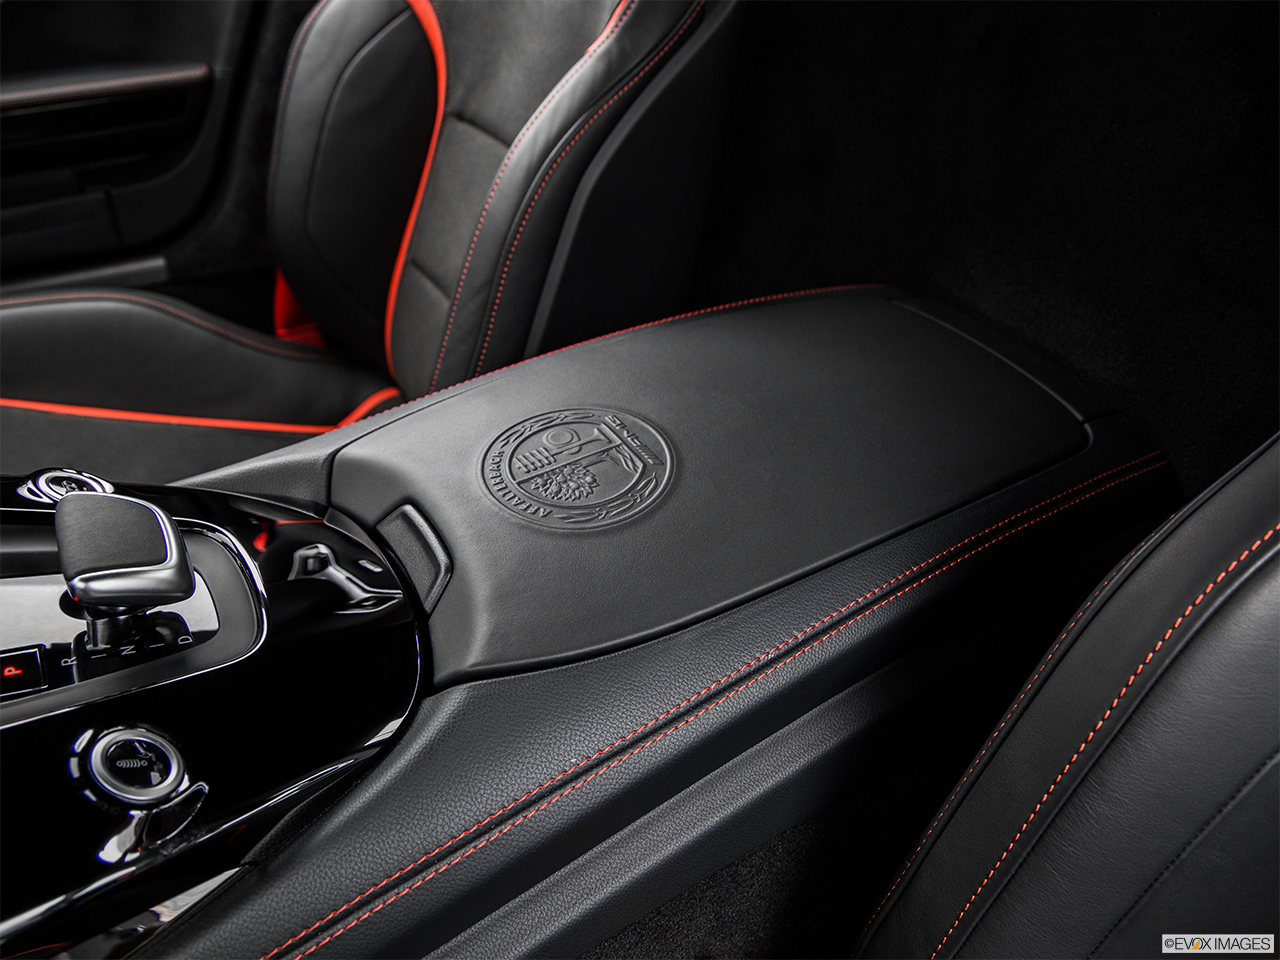 Car pictures list for mercedes benz amg gt 2016 s uae for Mercedes benz payment estimator